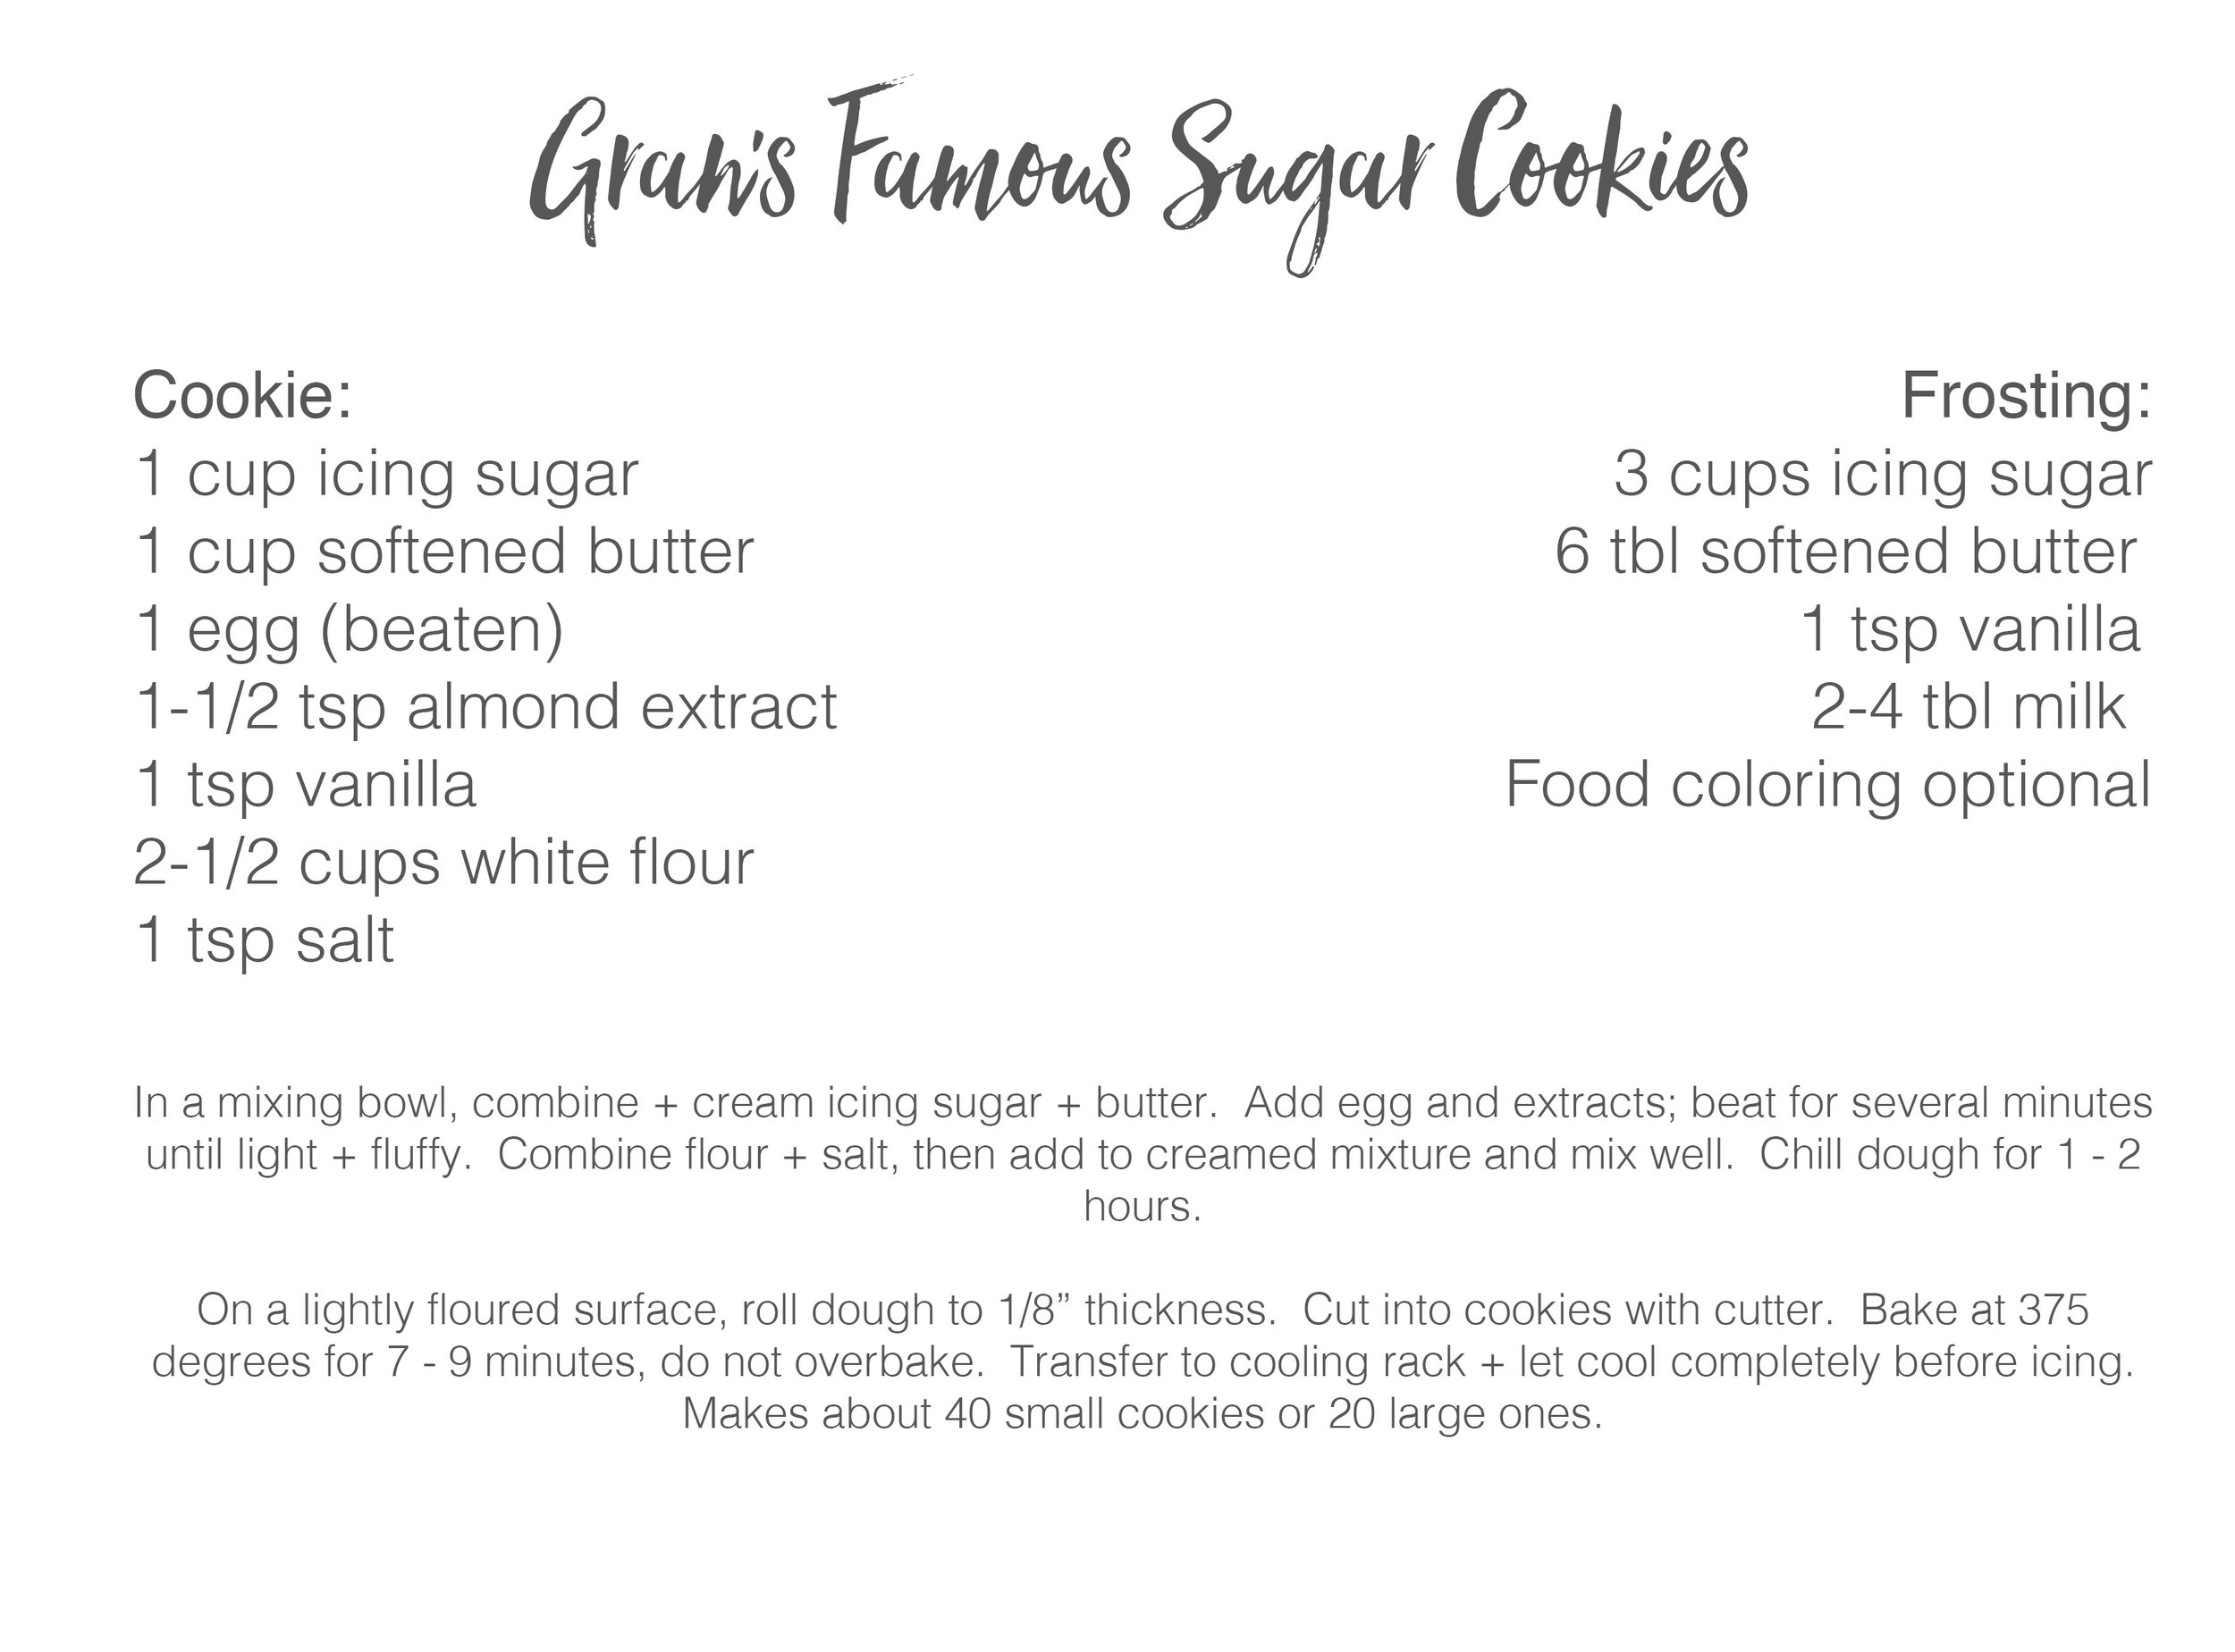 Sugar-cookie-recipe.jpg